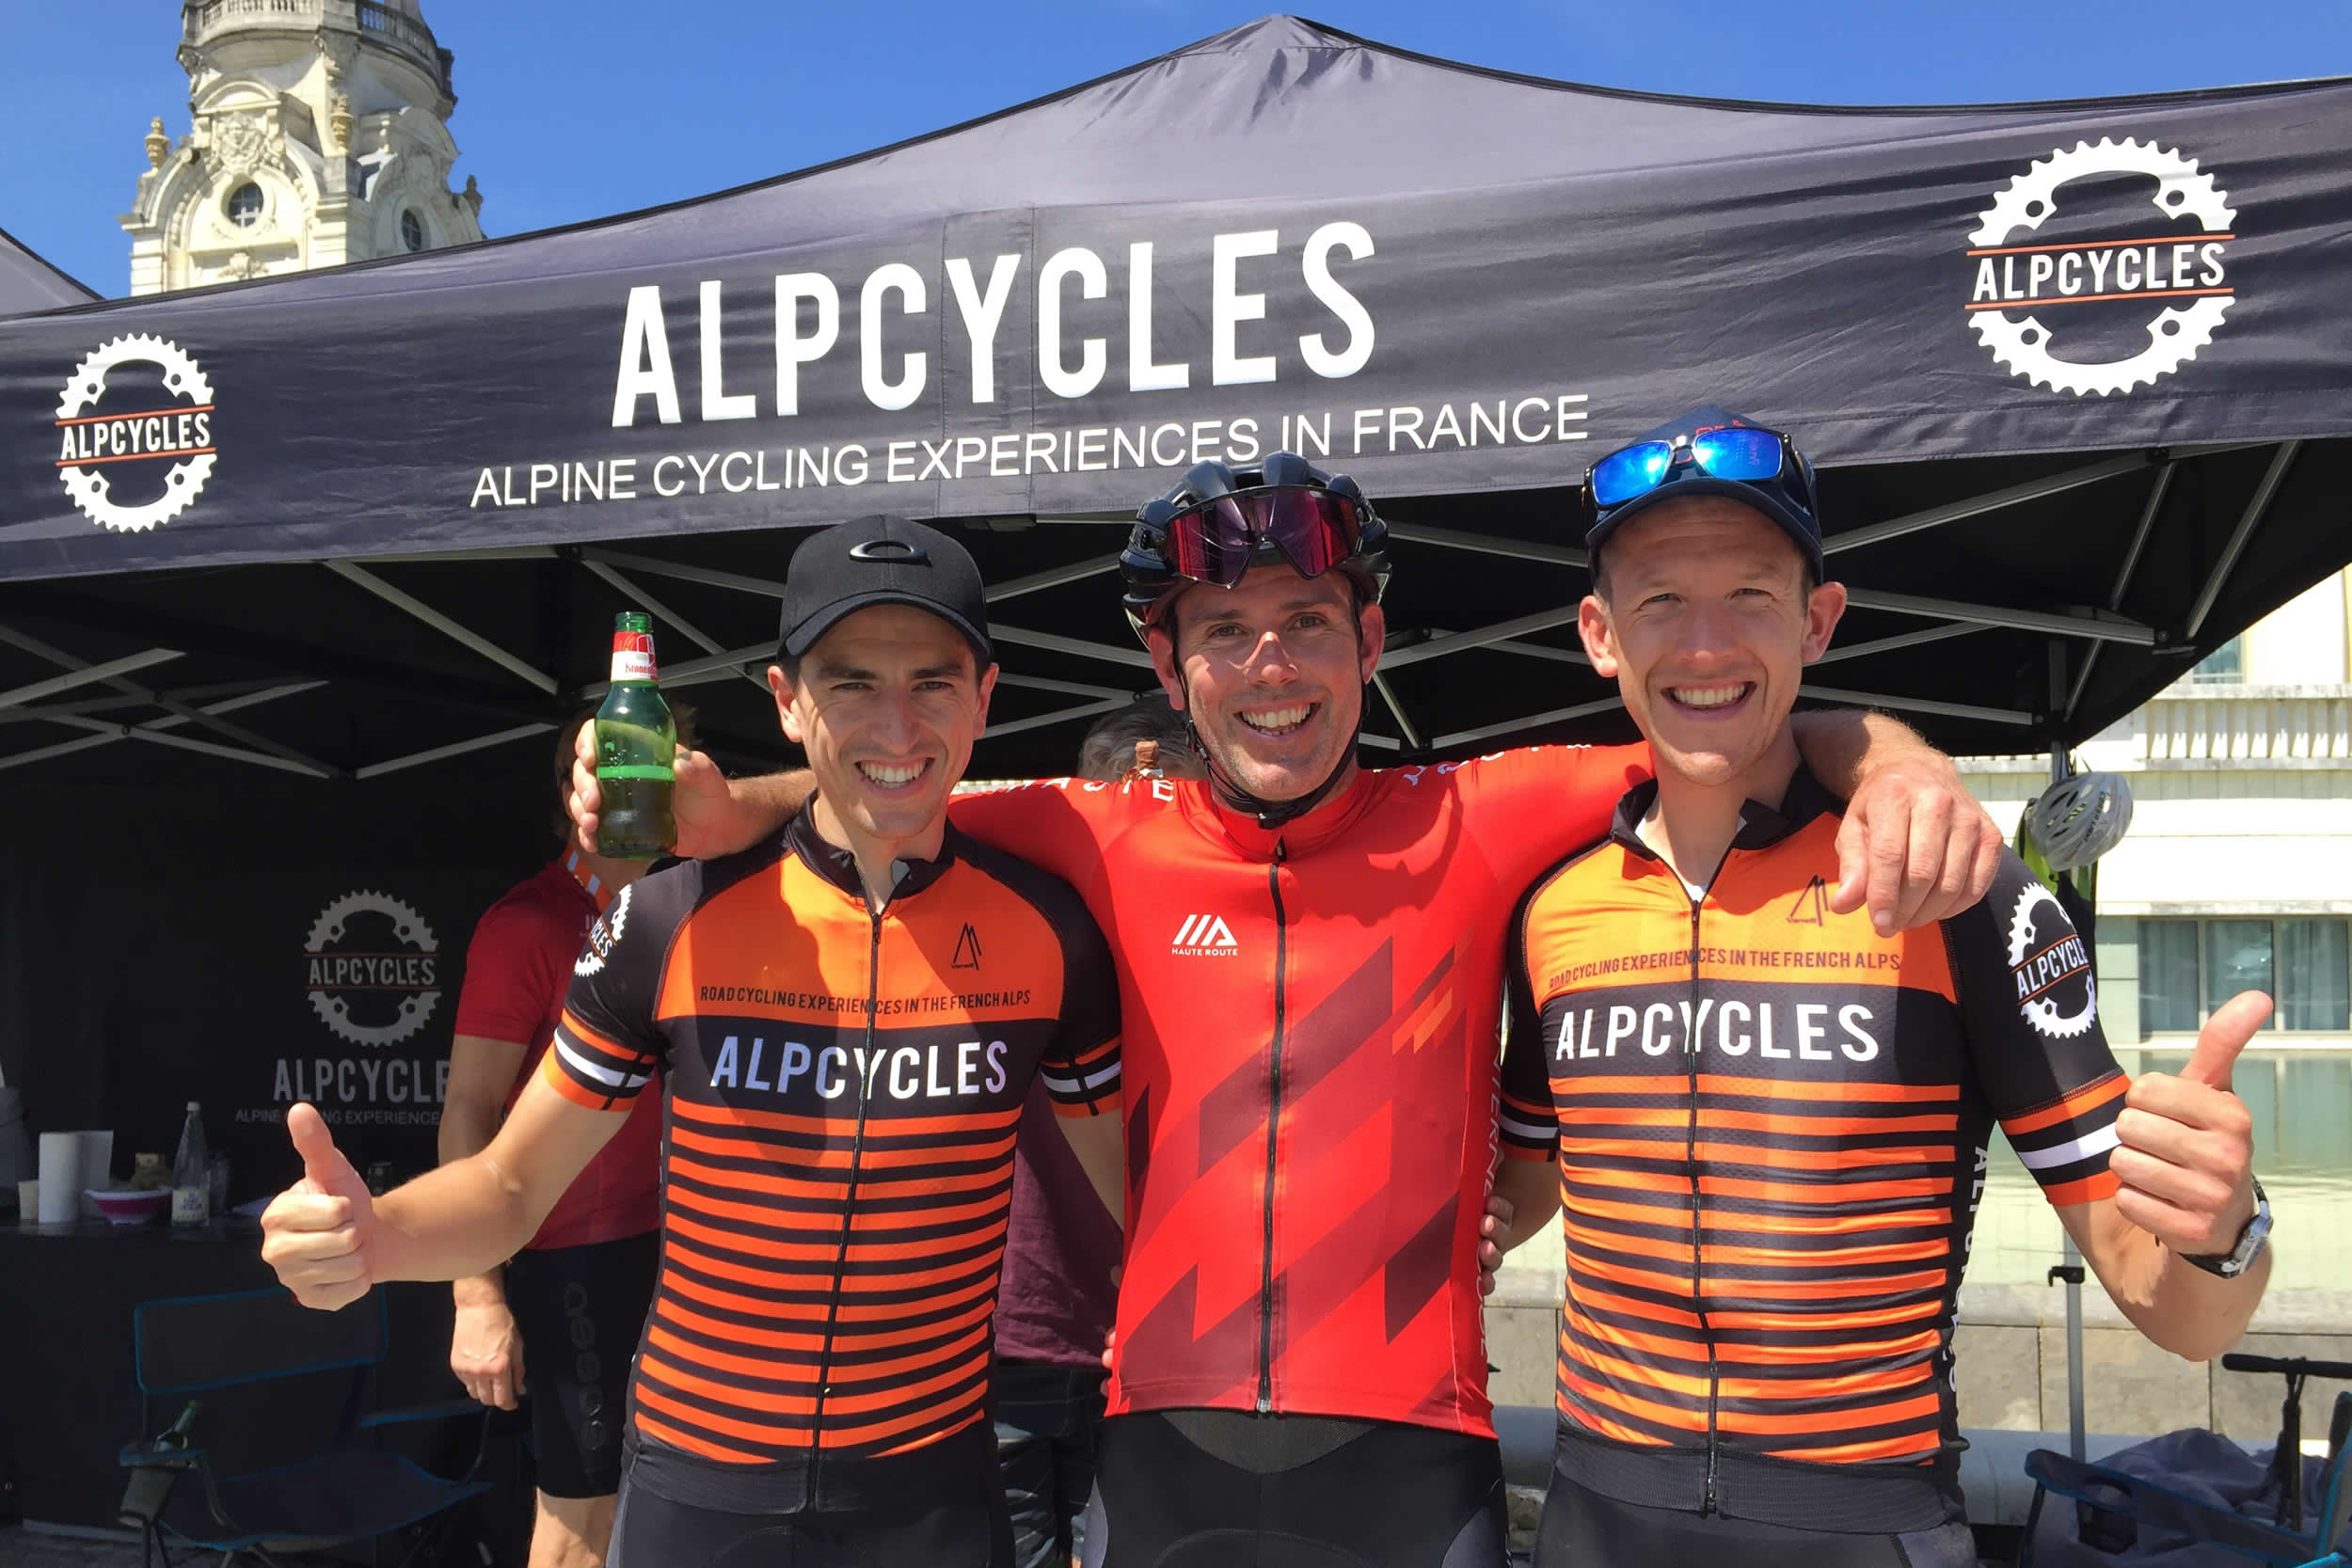 alpcycles events